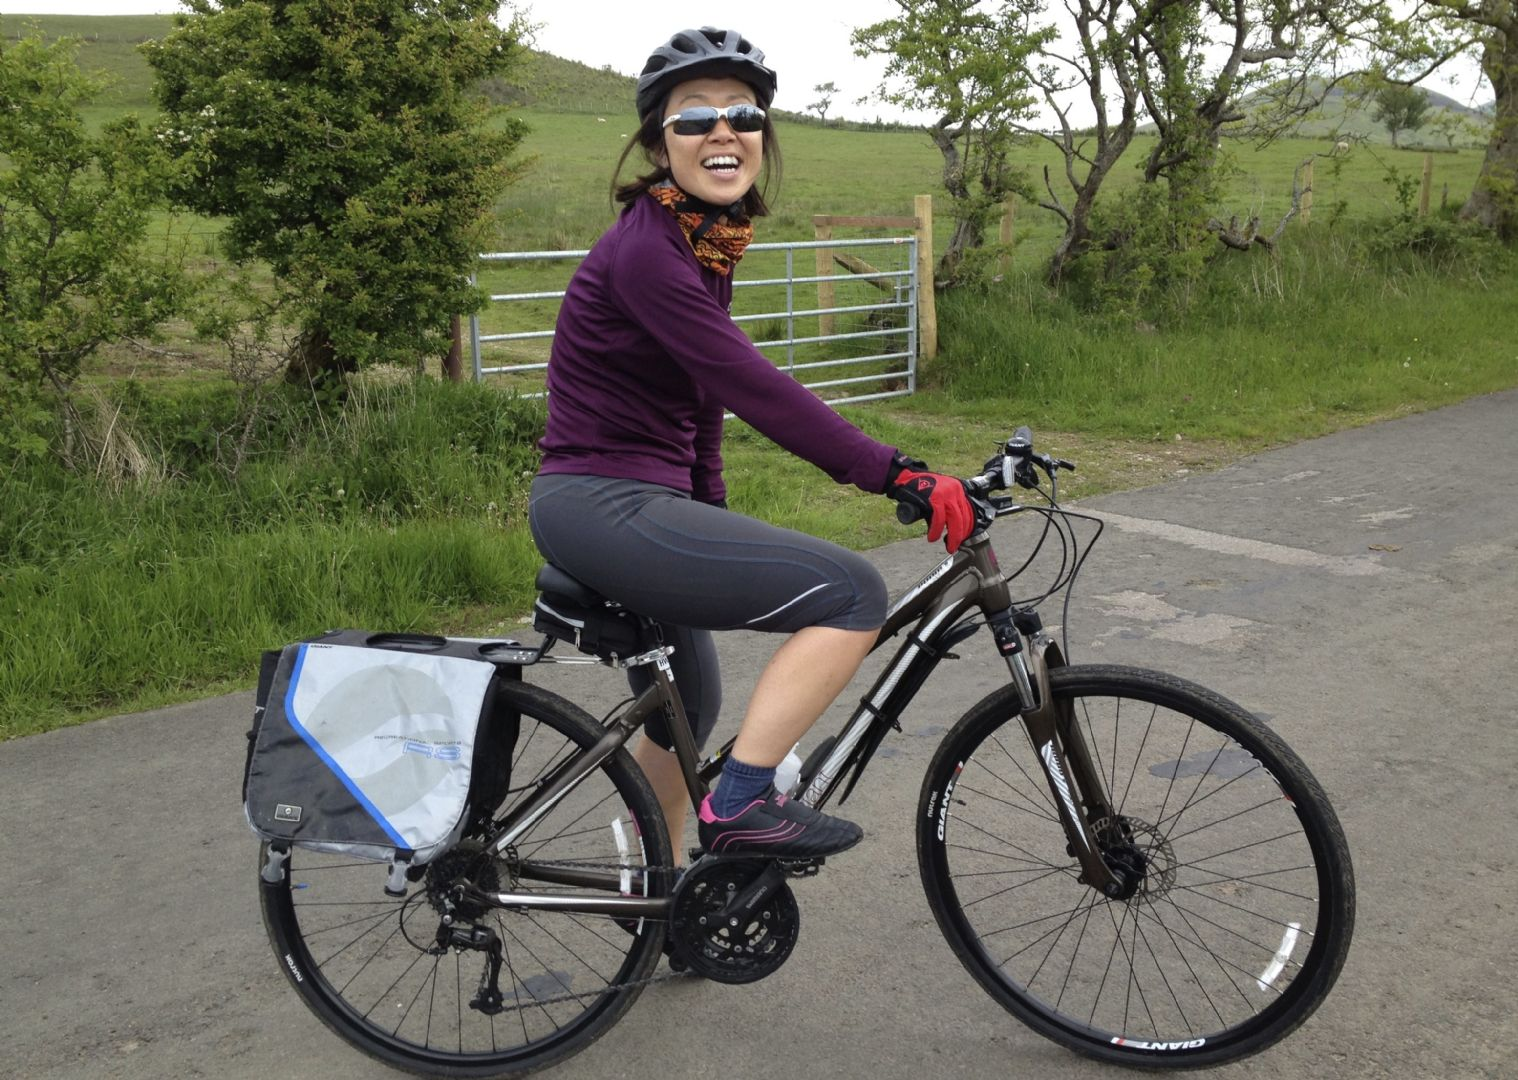 _Customer.103238.16263.jpg - UK - C2C - Coast to Coast 3 Days Cycling - Self-Guided Leisure Cycling Holiday - Leisure Cycling